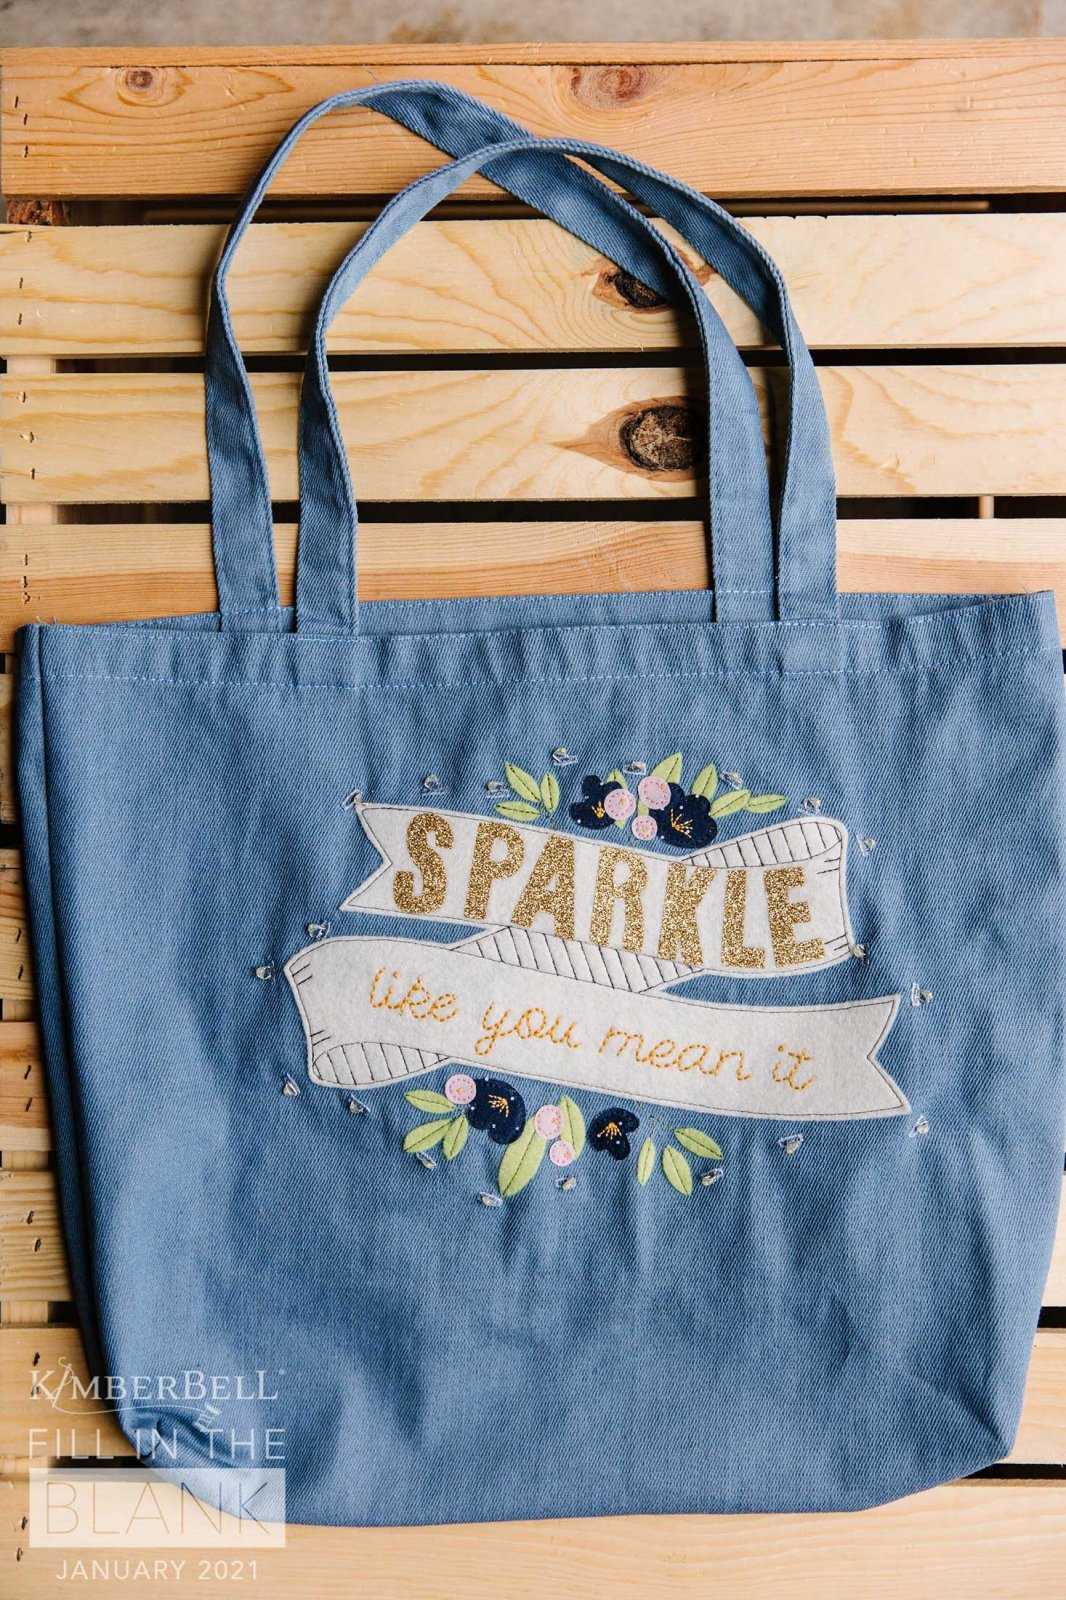 Kimberbell January Fill In The Blank Chambray Tote 15in x 17in